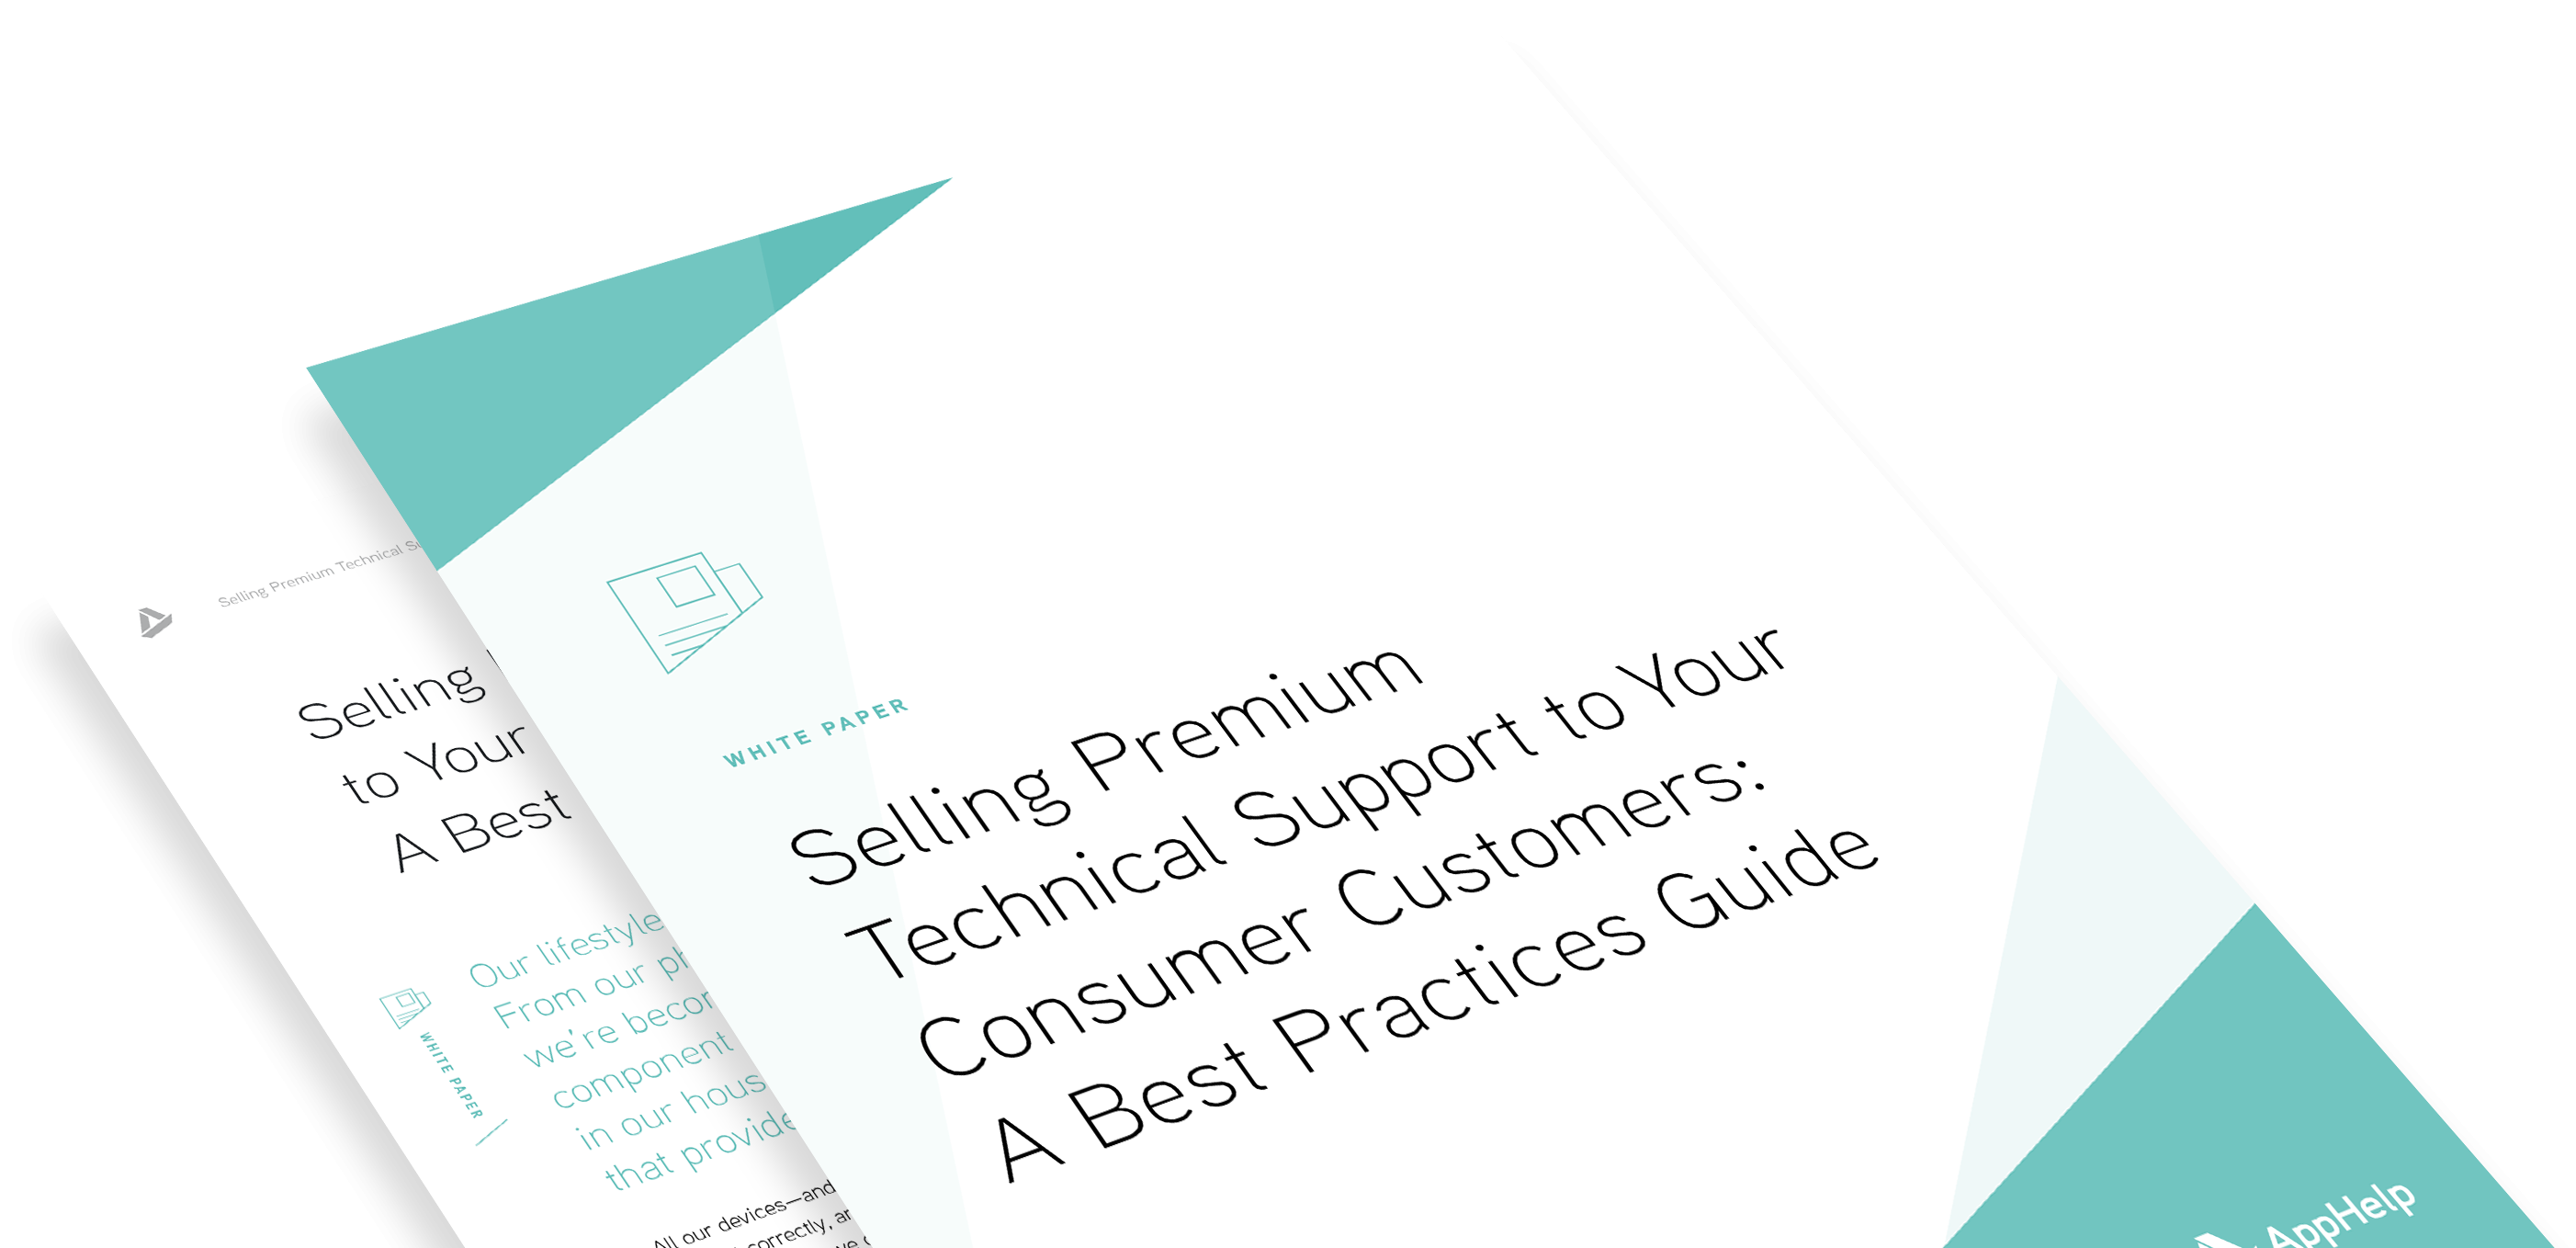 Selling Premium Technical Support to Your Consumer Customers: A Best Practices Guide